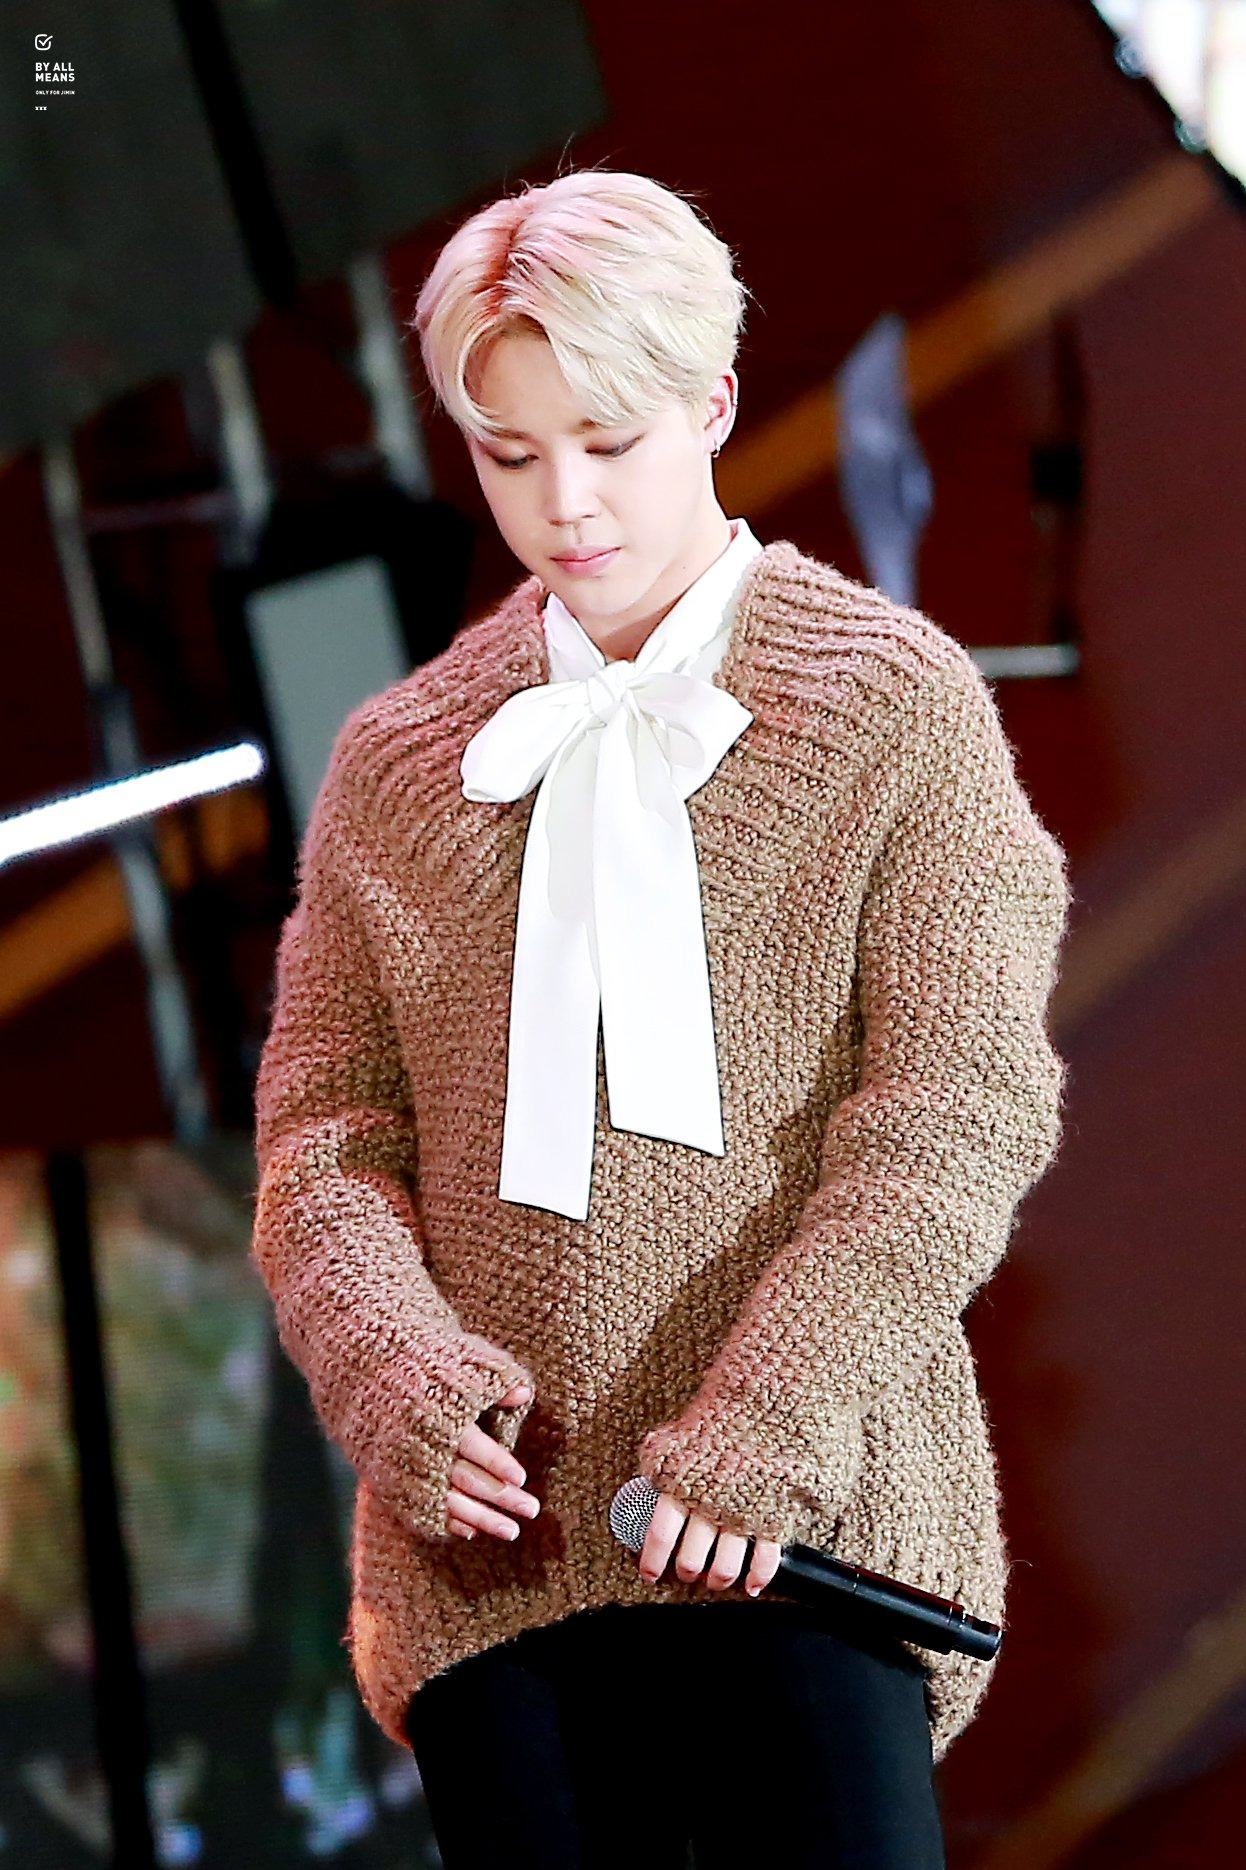 Bts Jimin Looks Like An Angel In His Over Sized Sweater